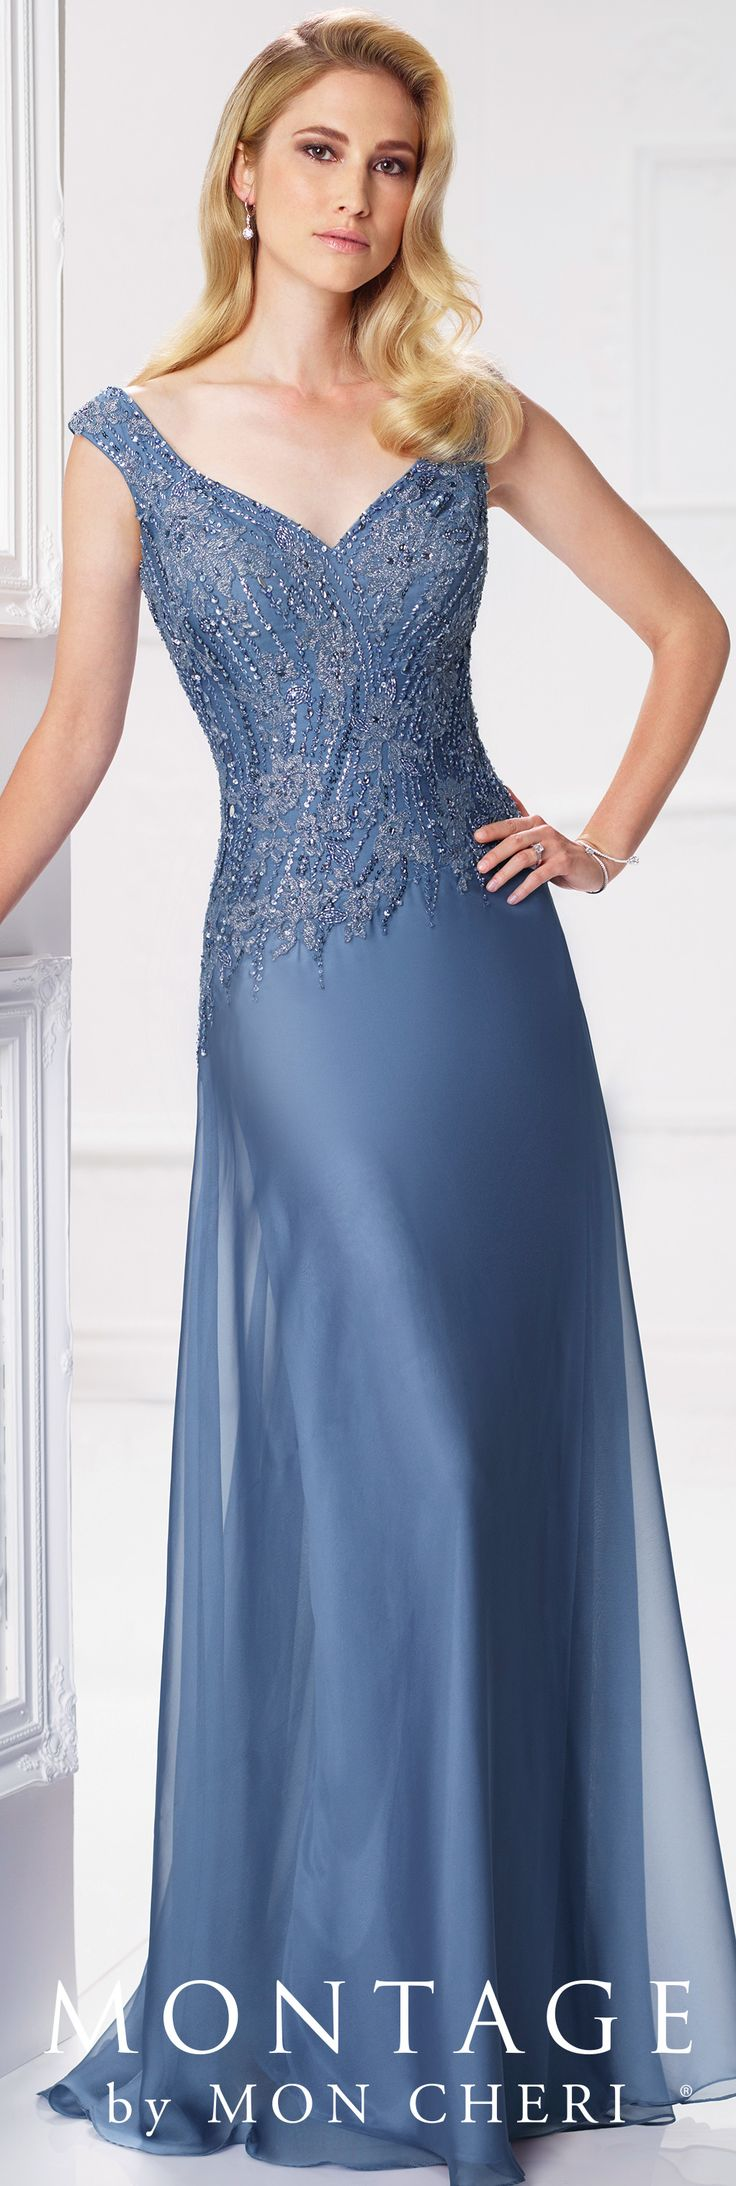 Formal Evening Gowns by Mon Cheri - Spring 2017 - Style No. 117903 - wedgwood blue chiffon and beaded lace evening dress